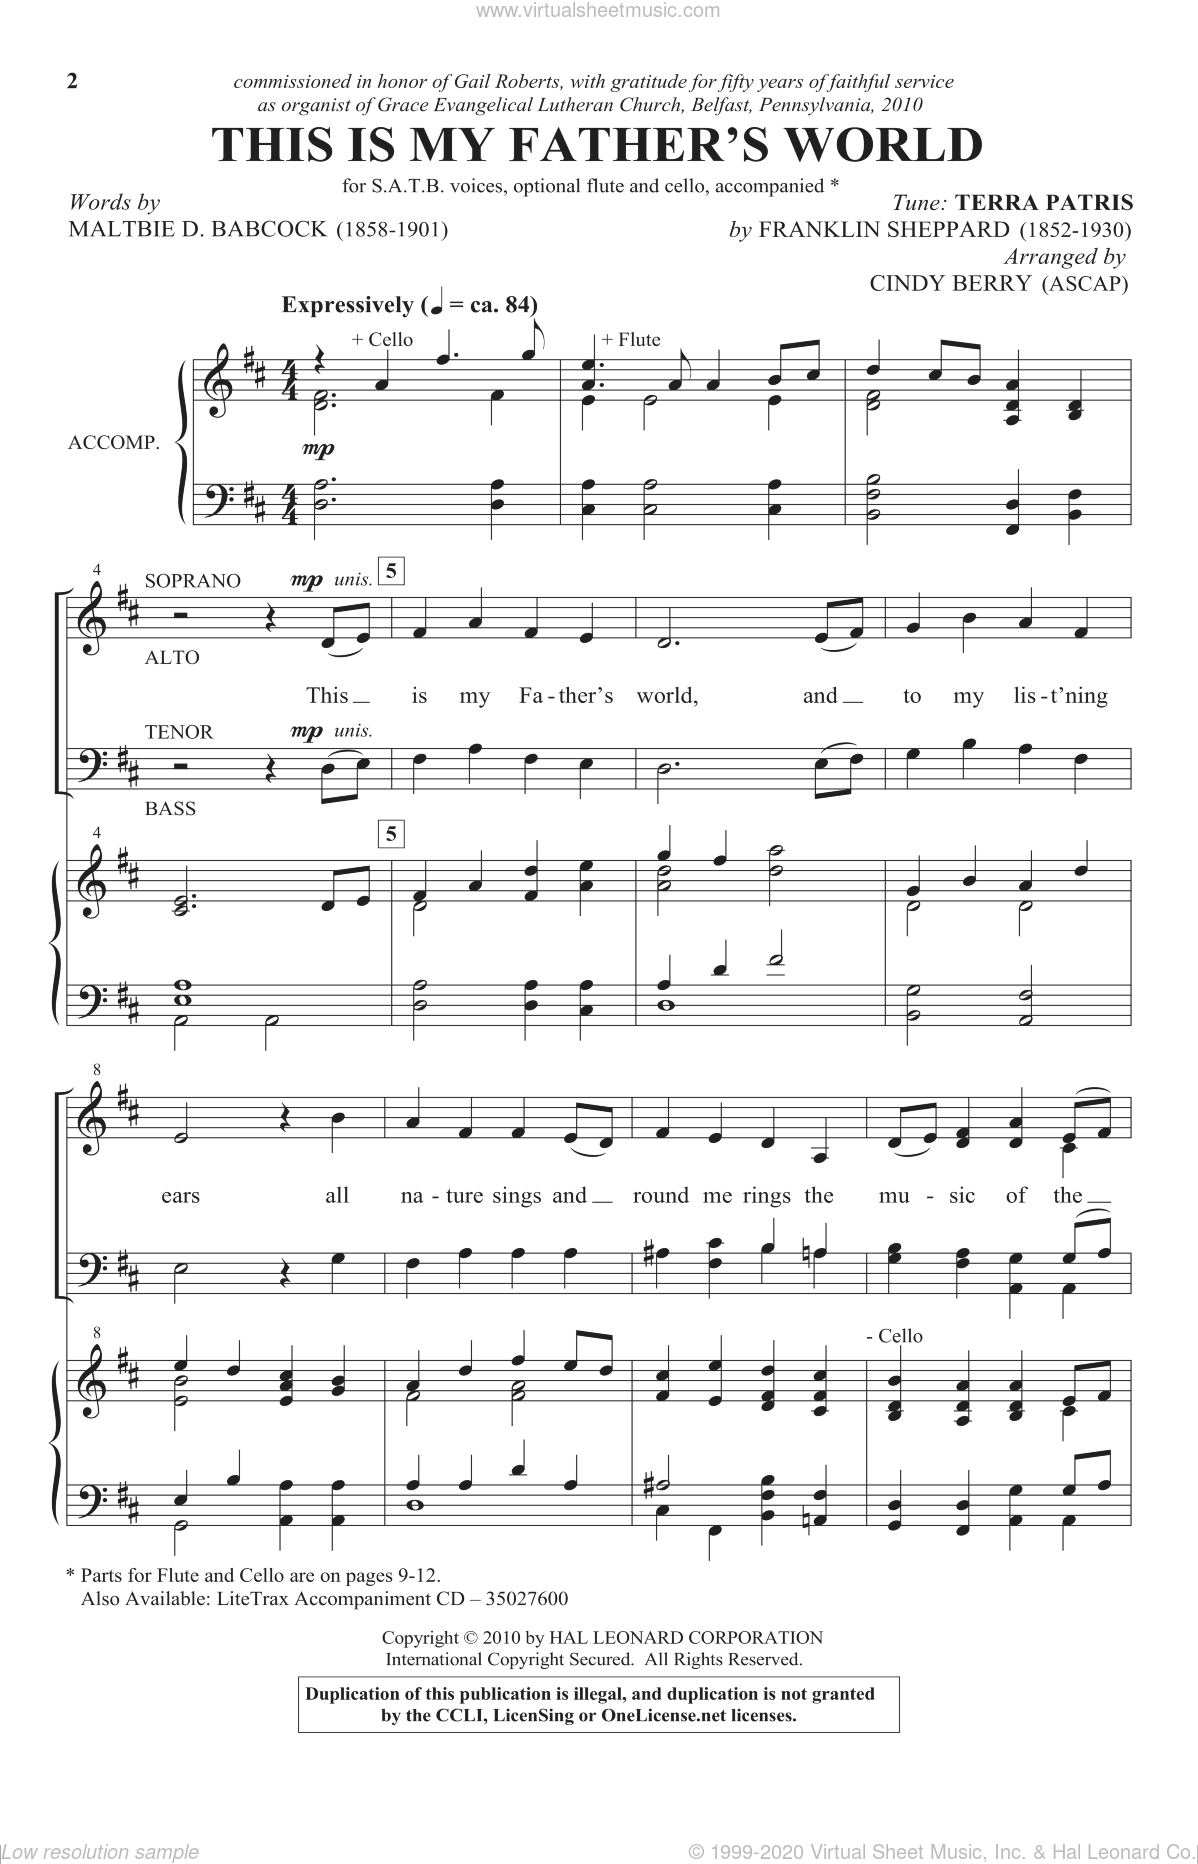 This Is My Father's World sheet music for choir and piano (SATB) by Franklin L. Sheppard